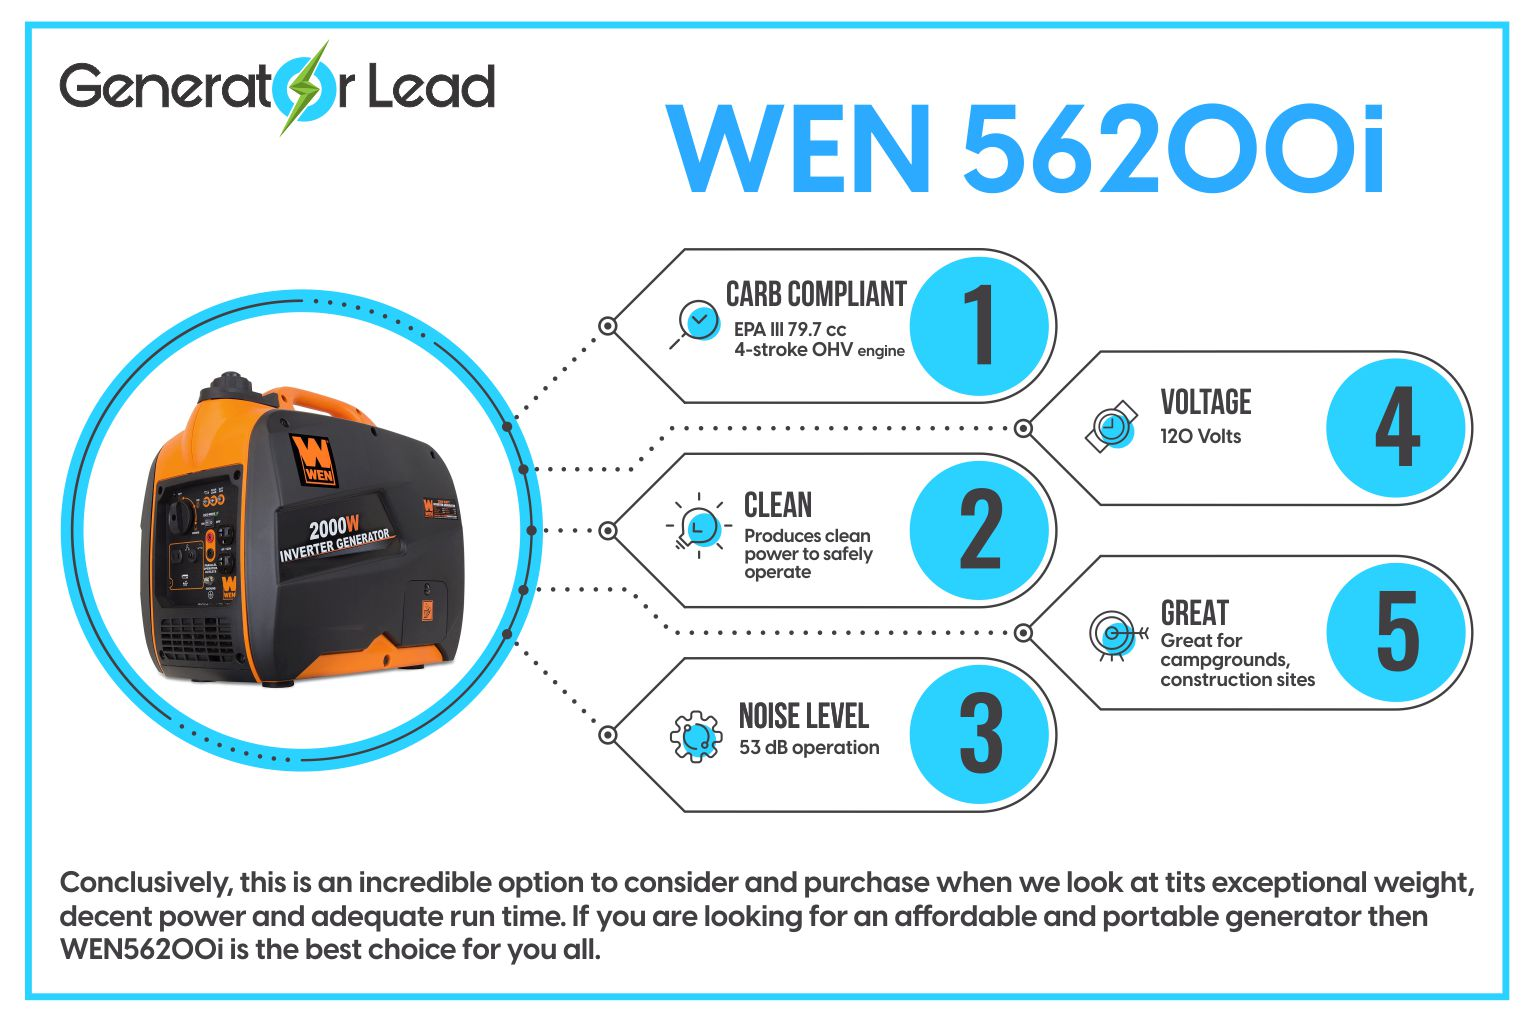 WEN 56200i - Gas Powered Portable Inverter Generator Infographic Review